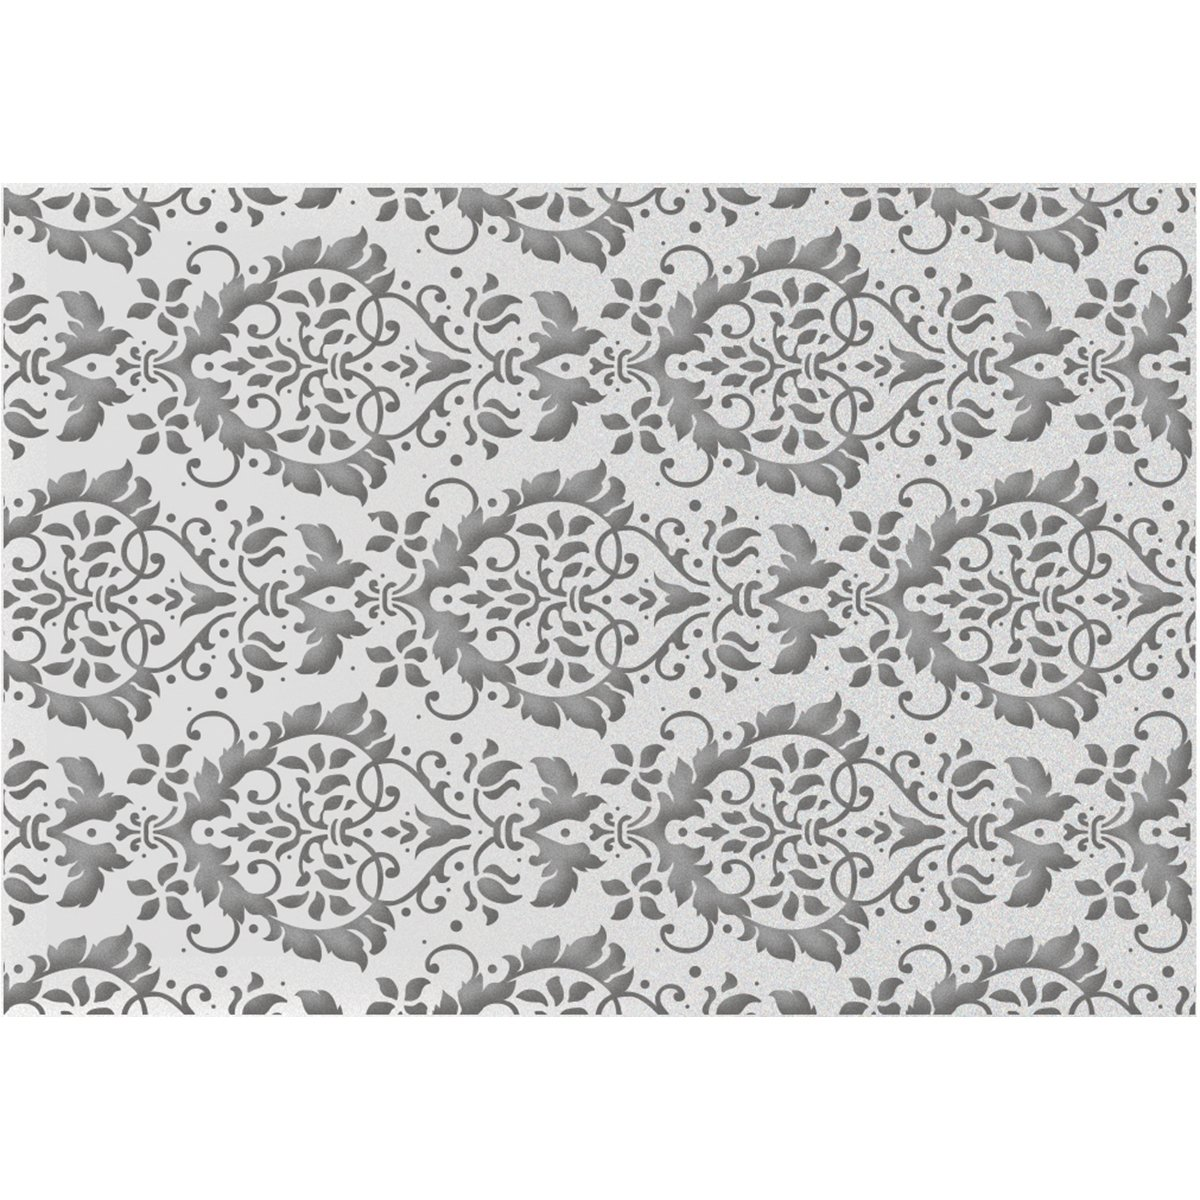 Couture Creations Embossing Folder A4-Atherton